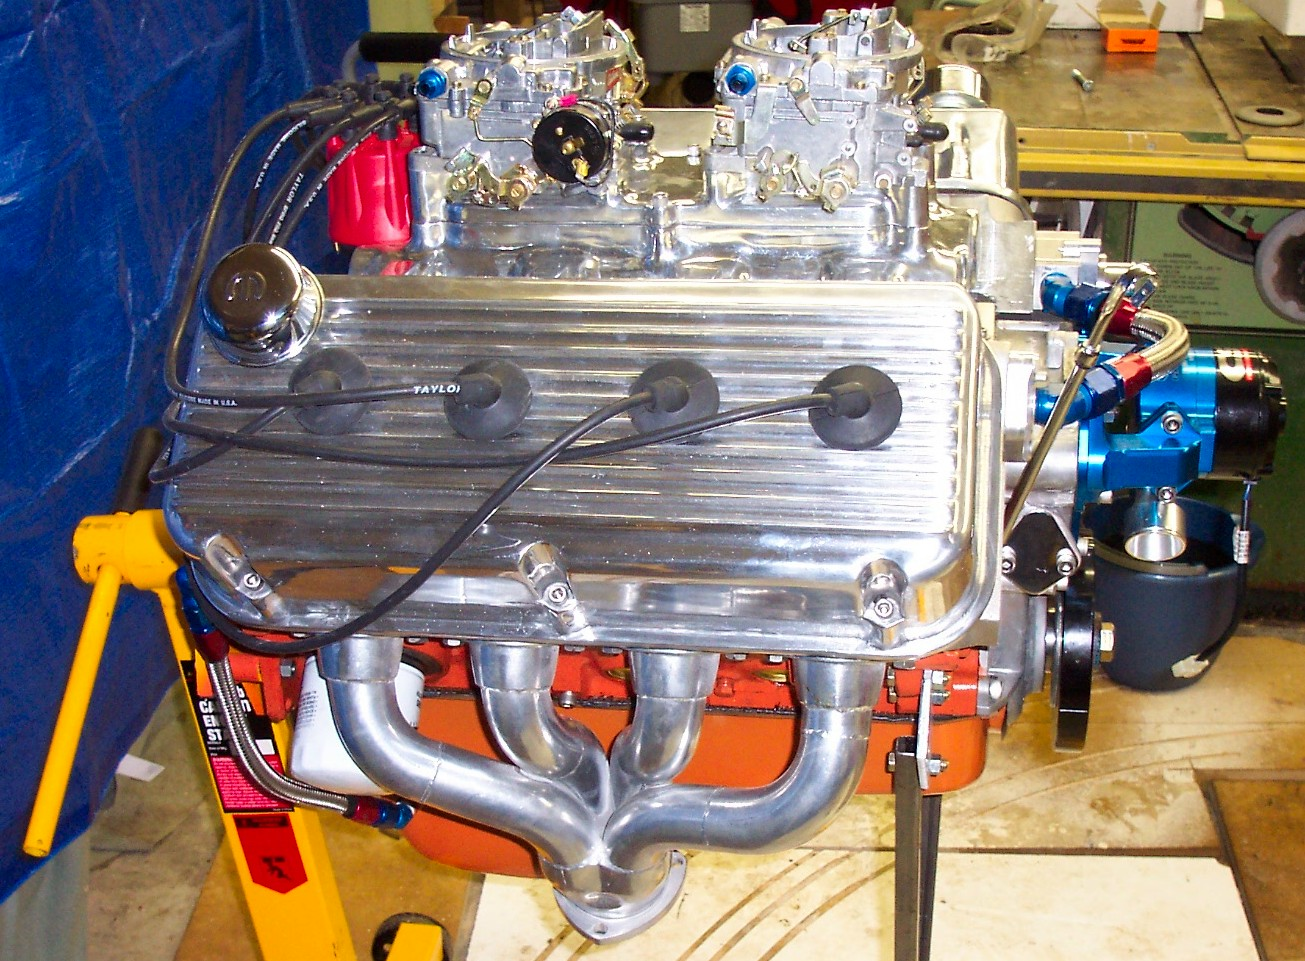 Got a Hemi? Get a Small Block Hemi! – Information on collecting cars